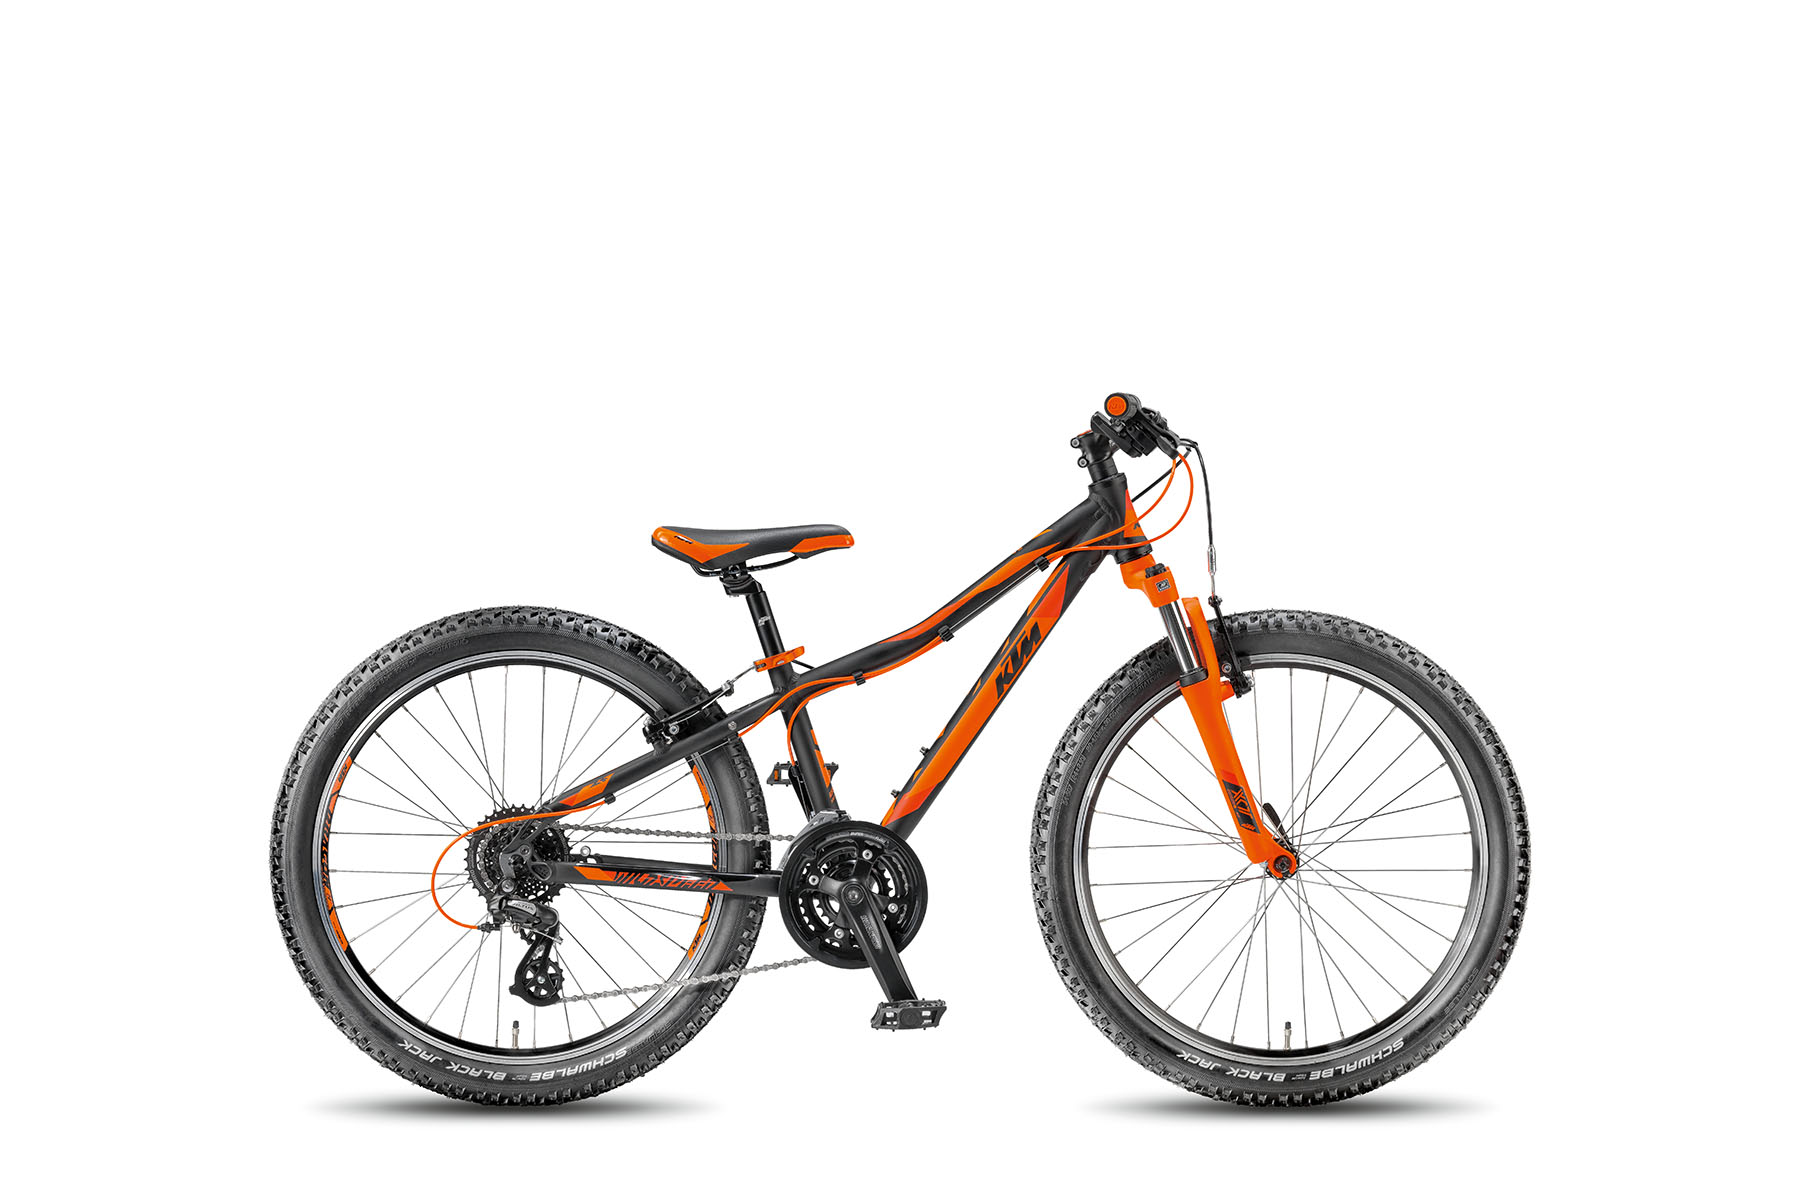 Bicicleta KTM WILD SPEED 24.24 – 2018